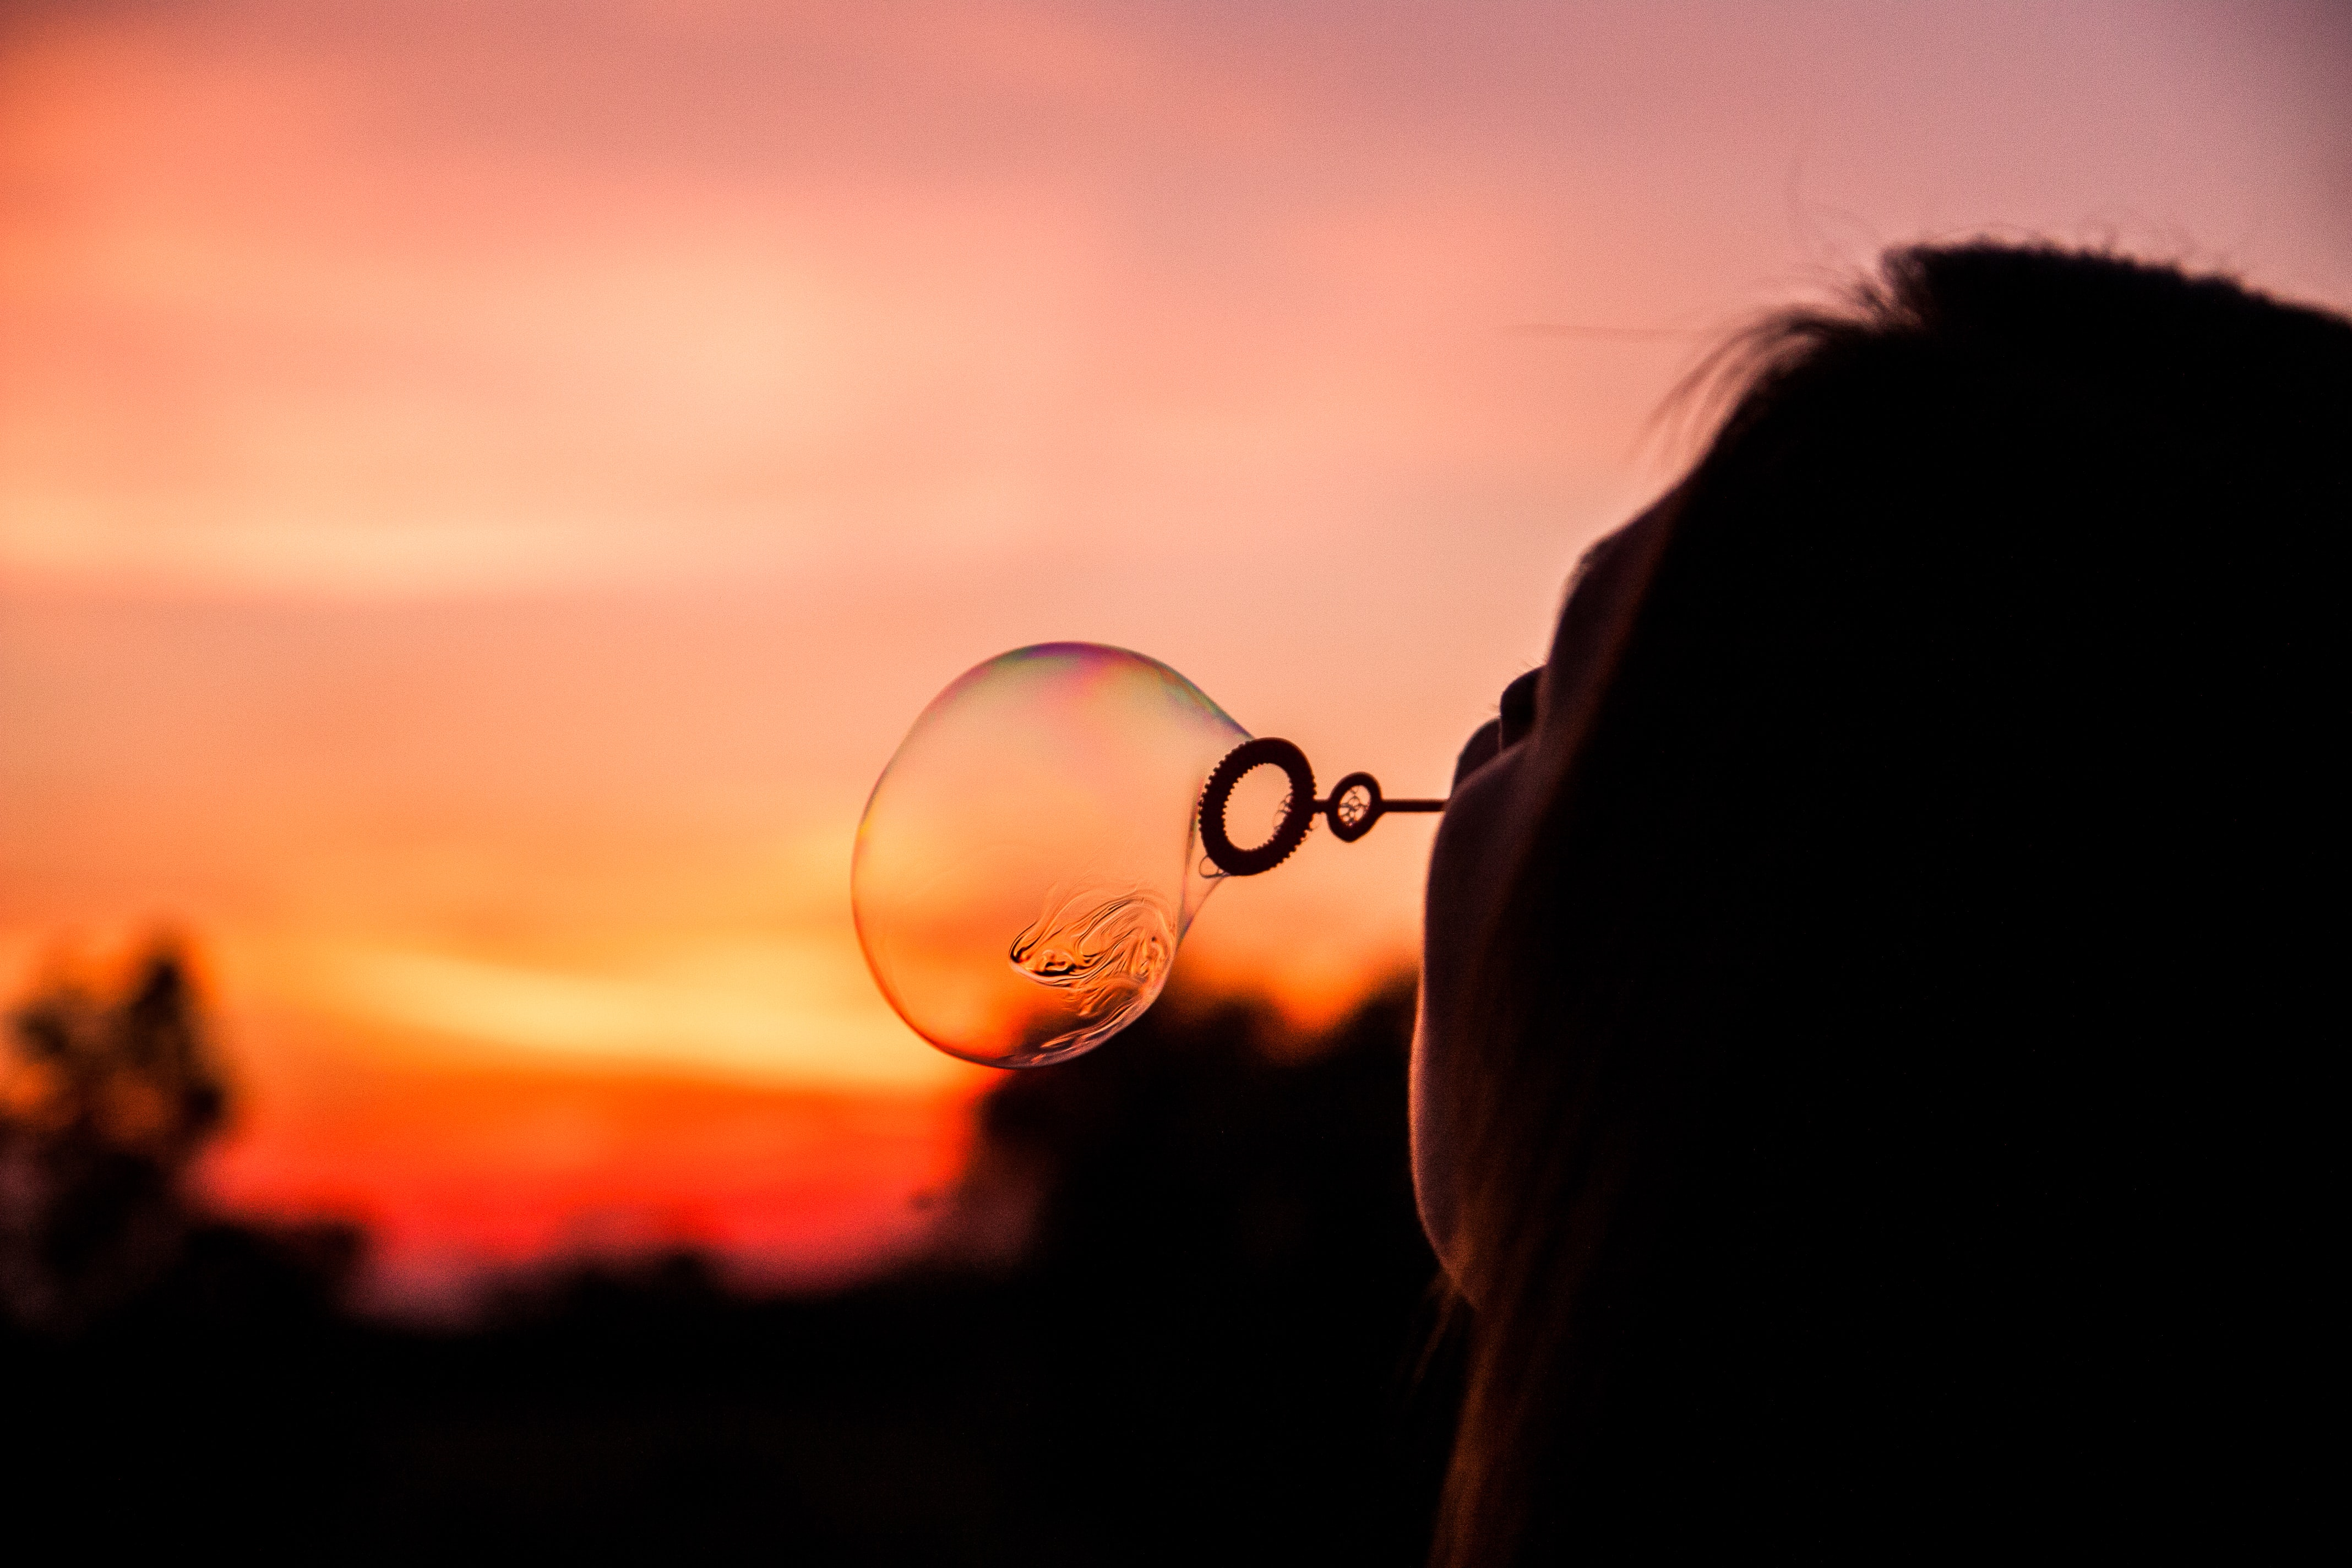 A woman blowing soap bubbles during sunset